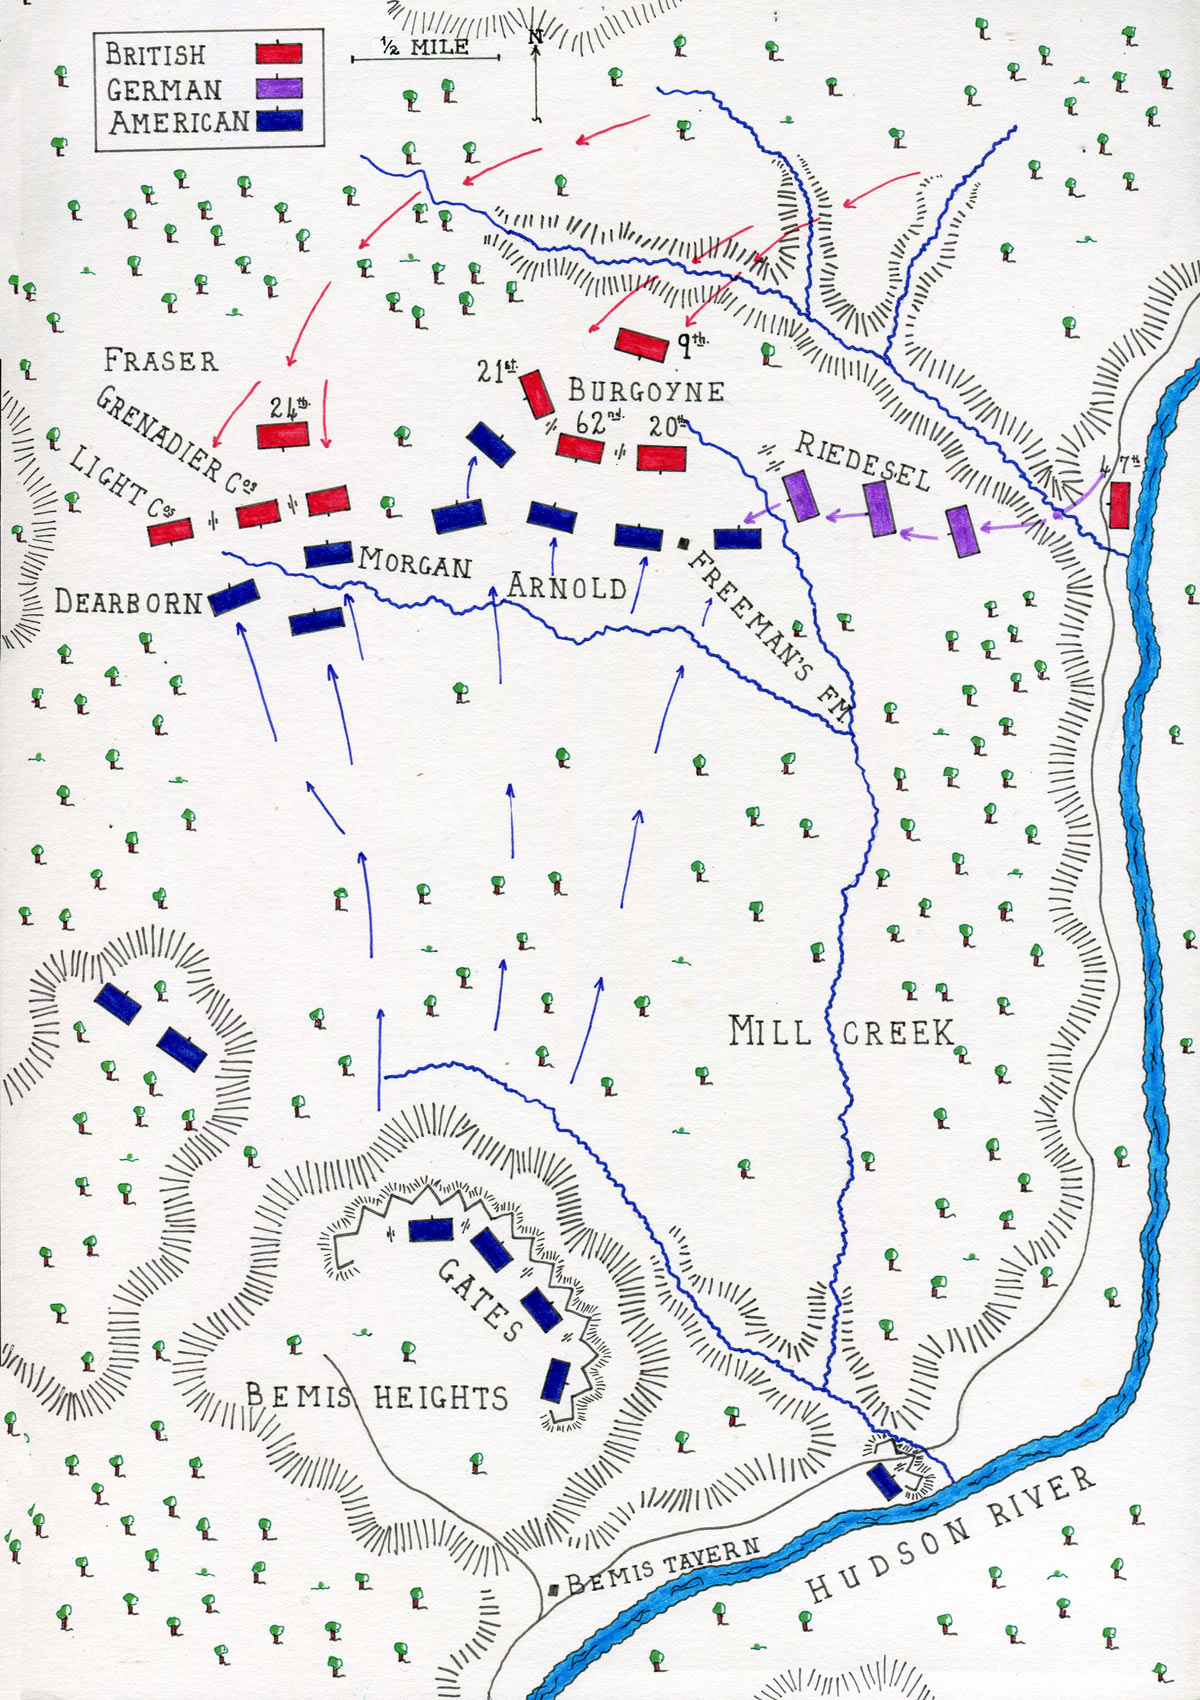 Battle Of Freemans Farm - Battle of saratoga us maps